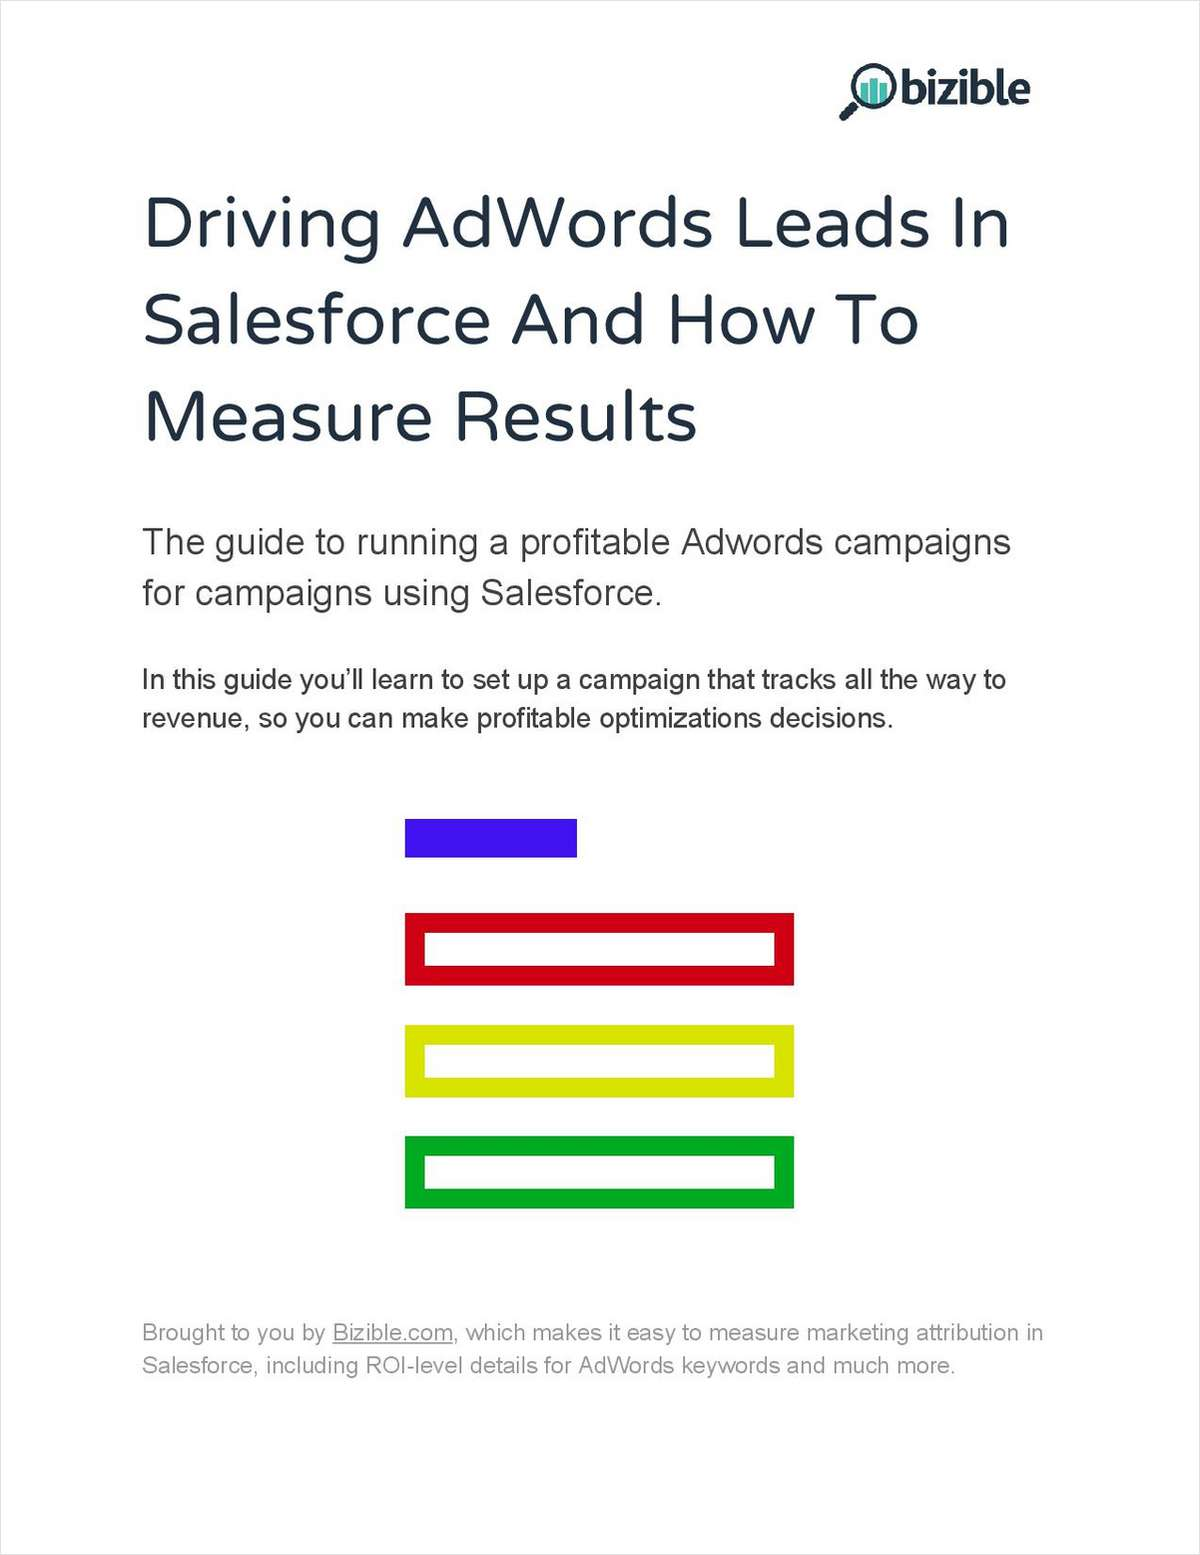 Driving AdWords Leads In Salesforce and How to Measure Results